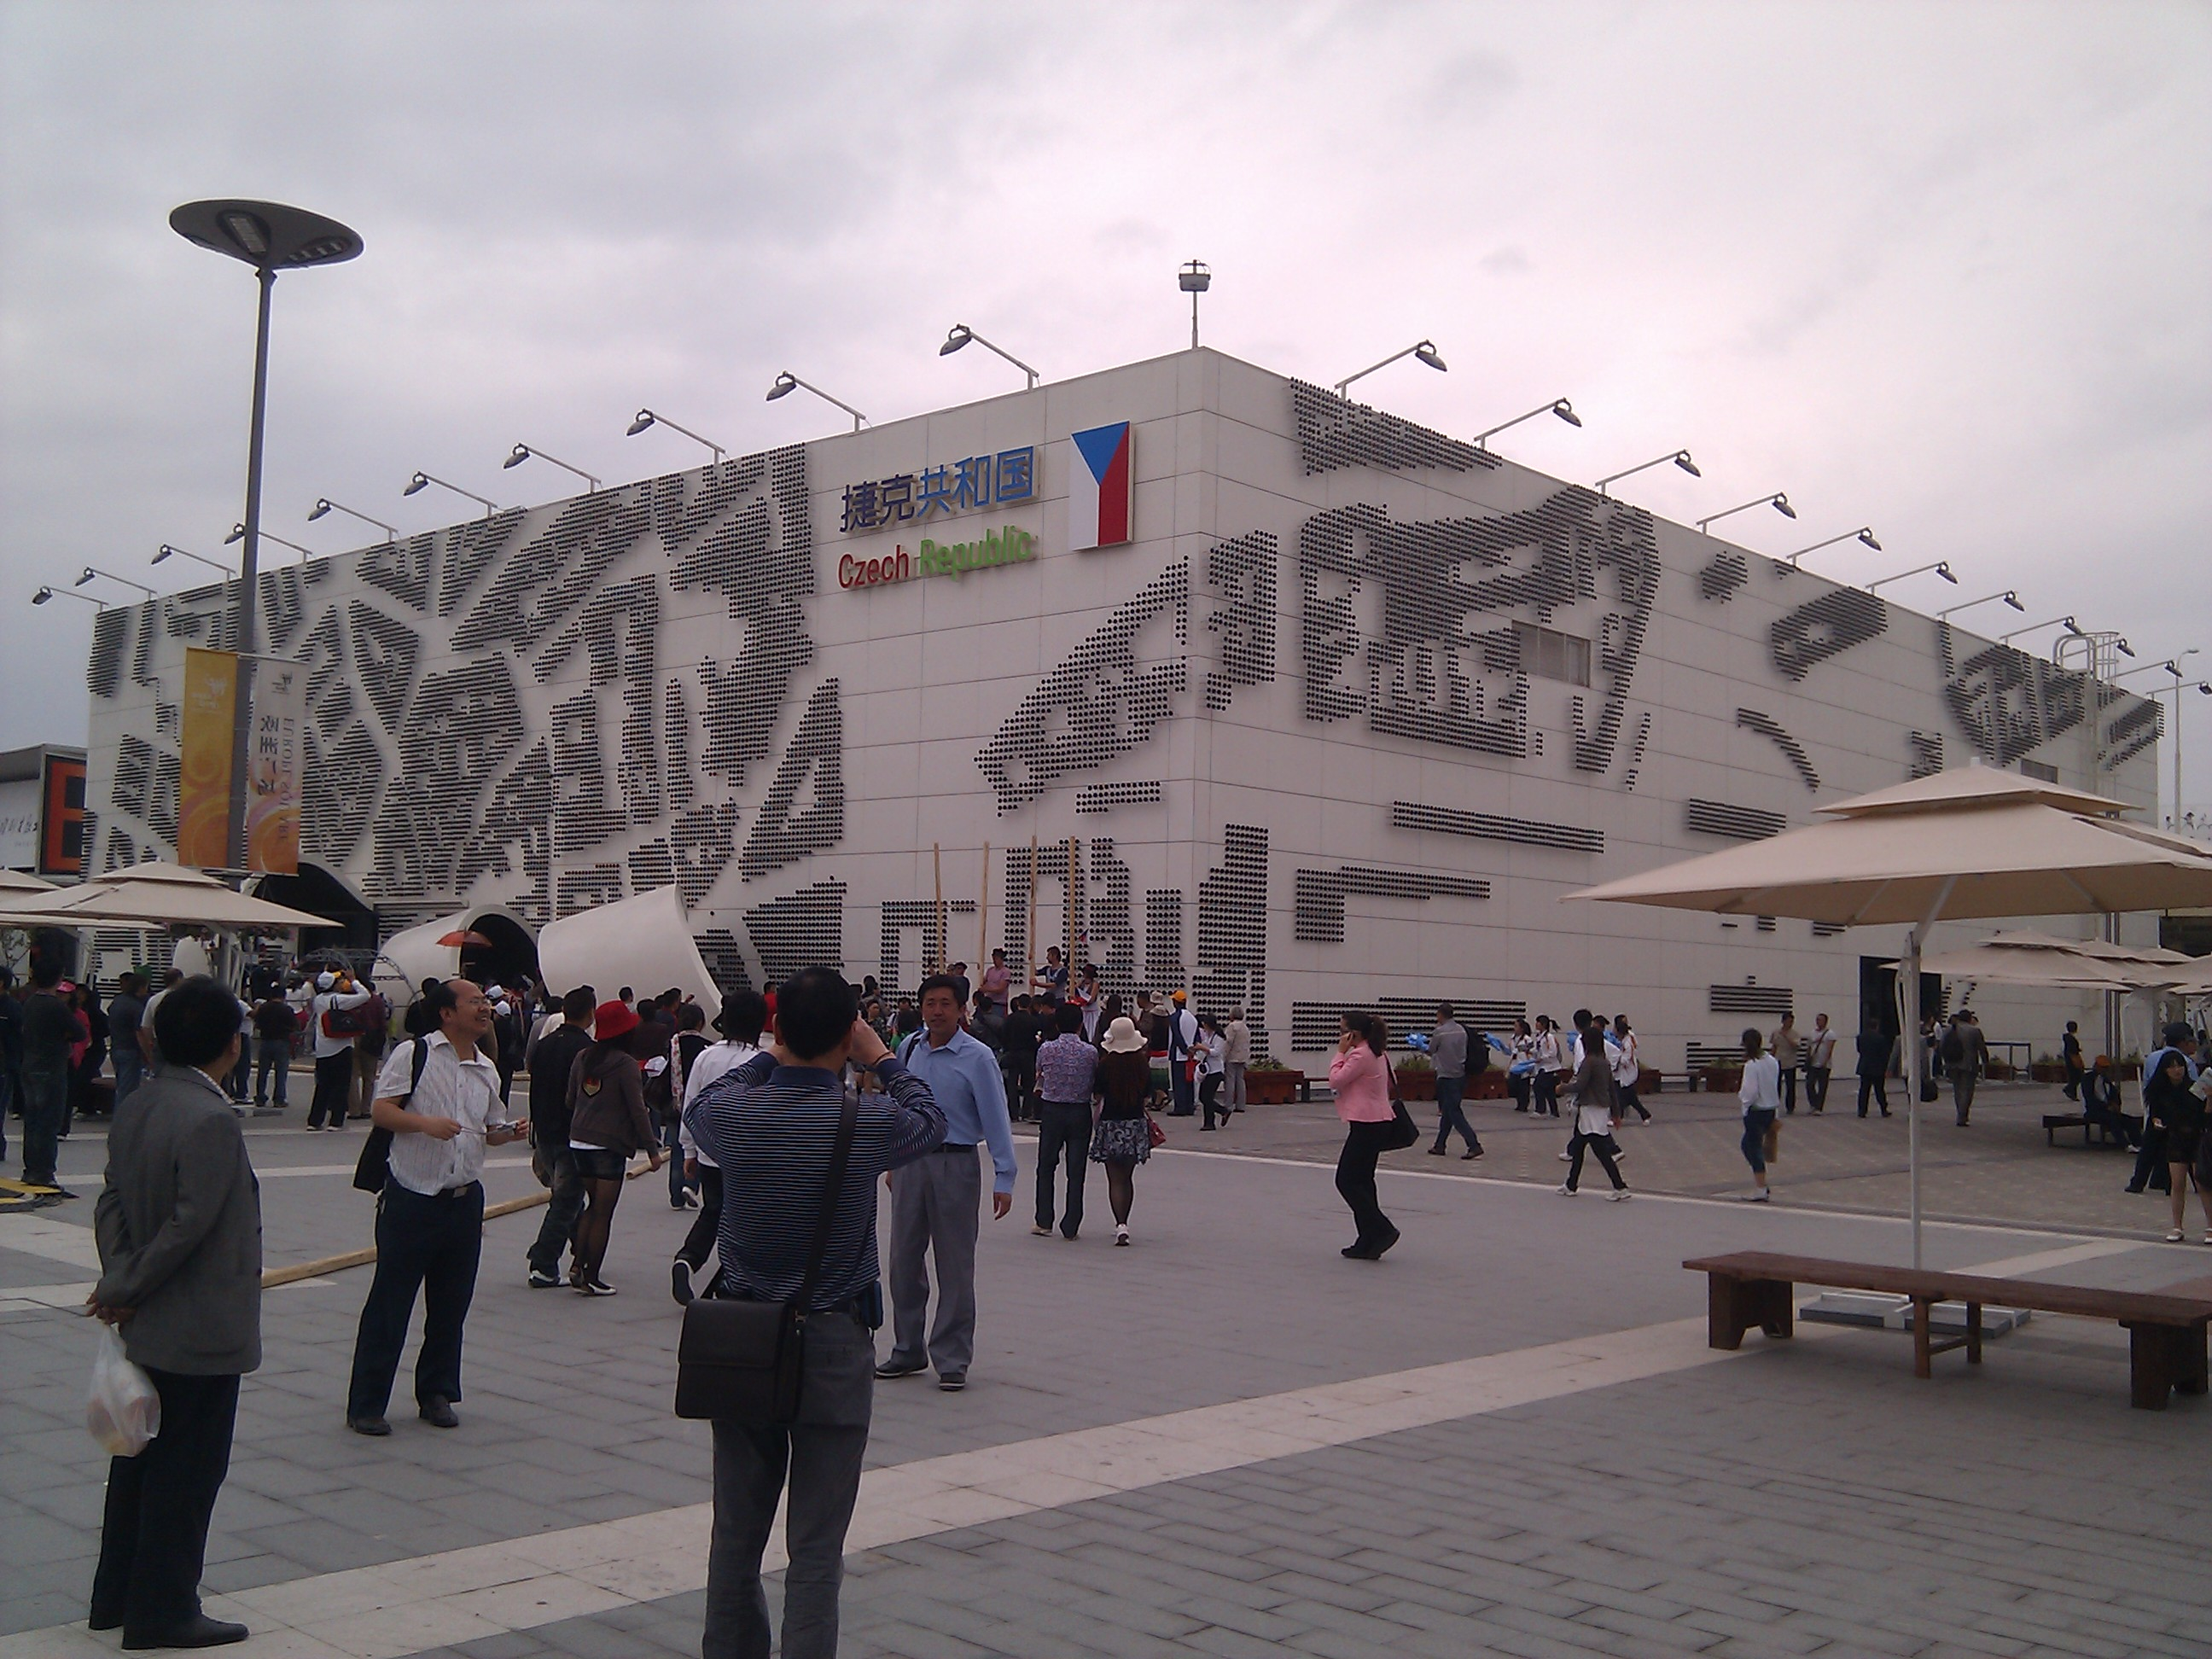 1000 images about expo 2010 pavillions on pinterest for Expo 2010 pavilions